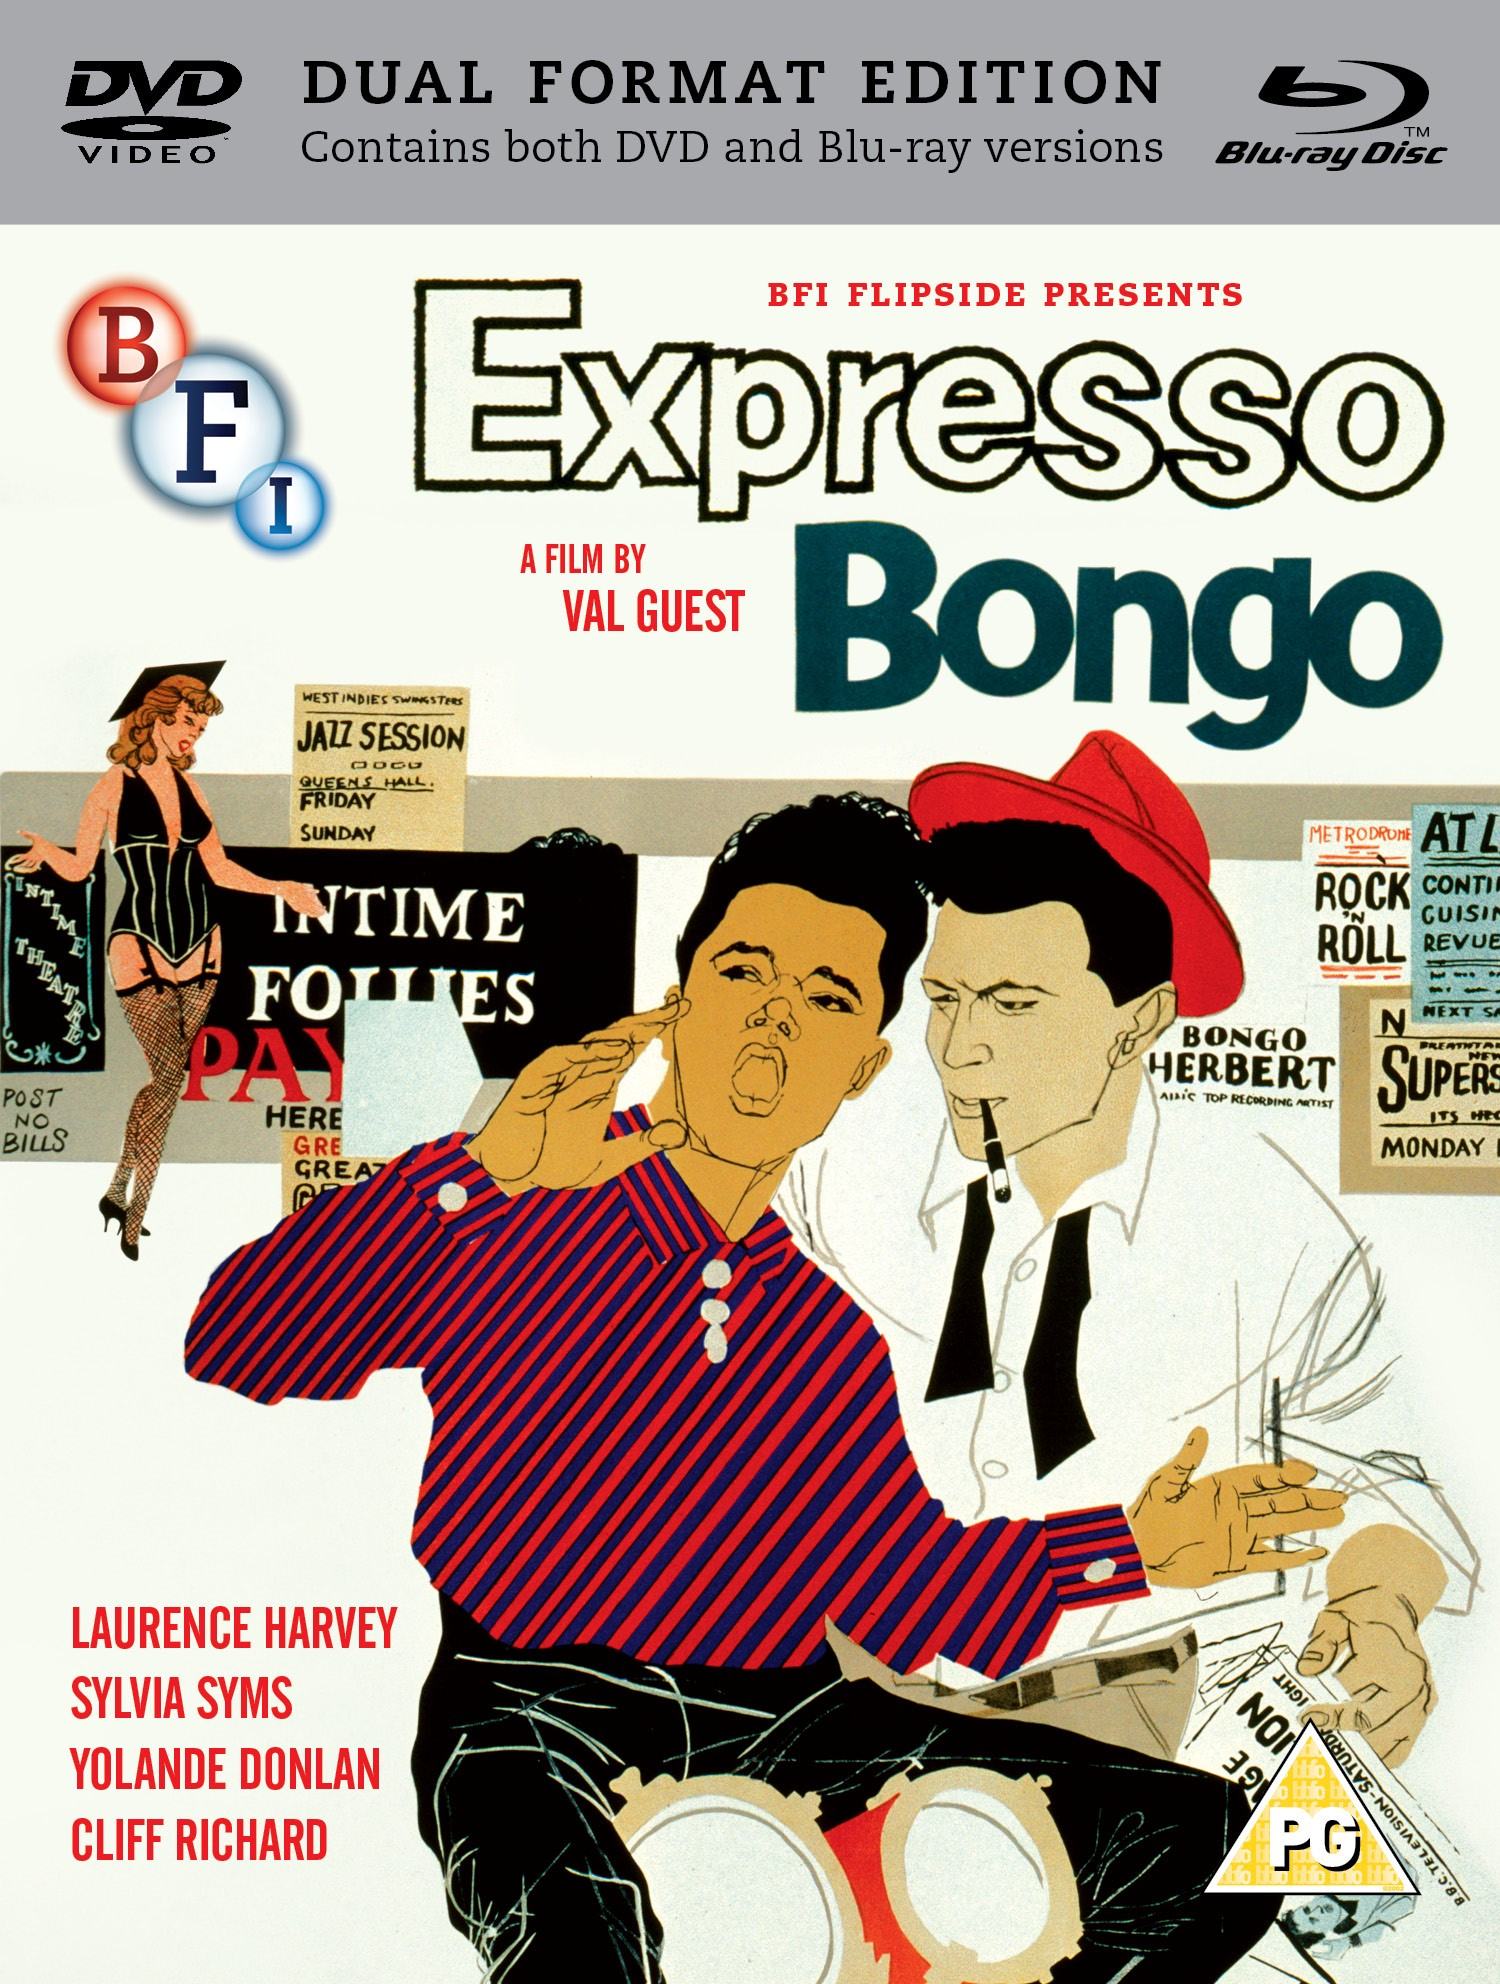 Buy Expresso Bongo (Flipside 031)  (Dual Format Edition)